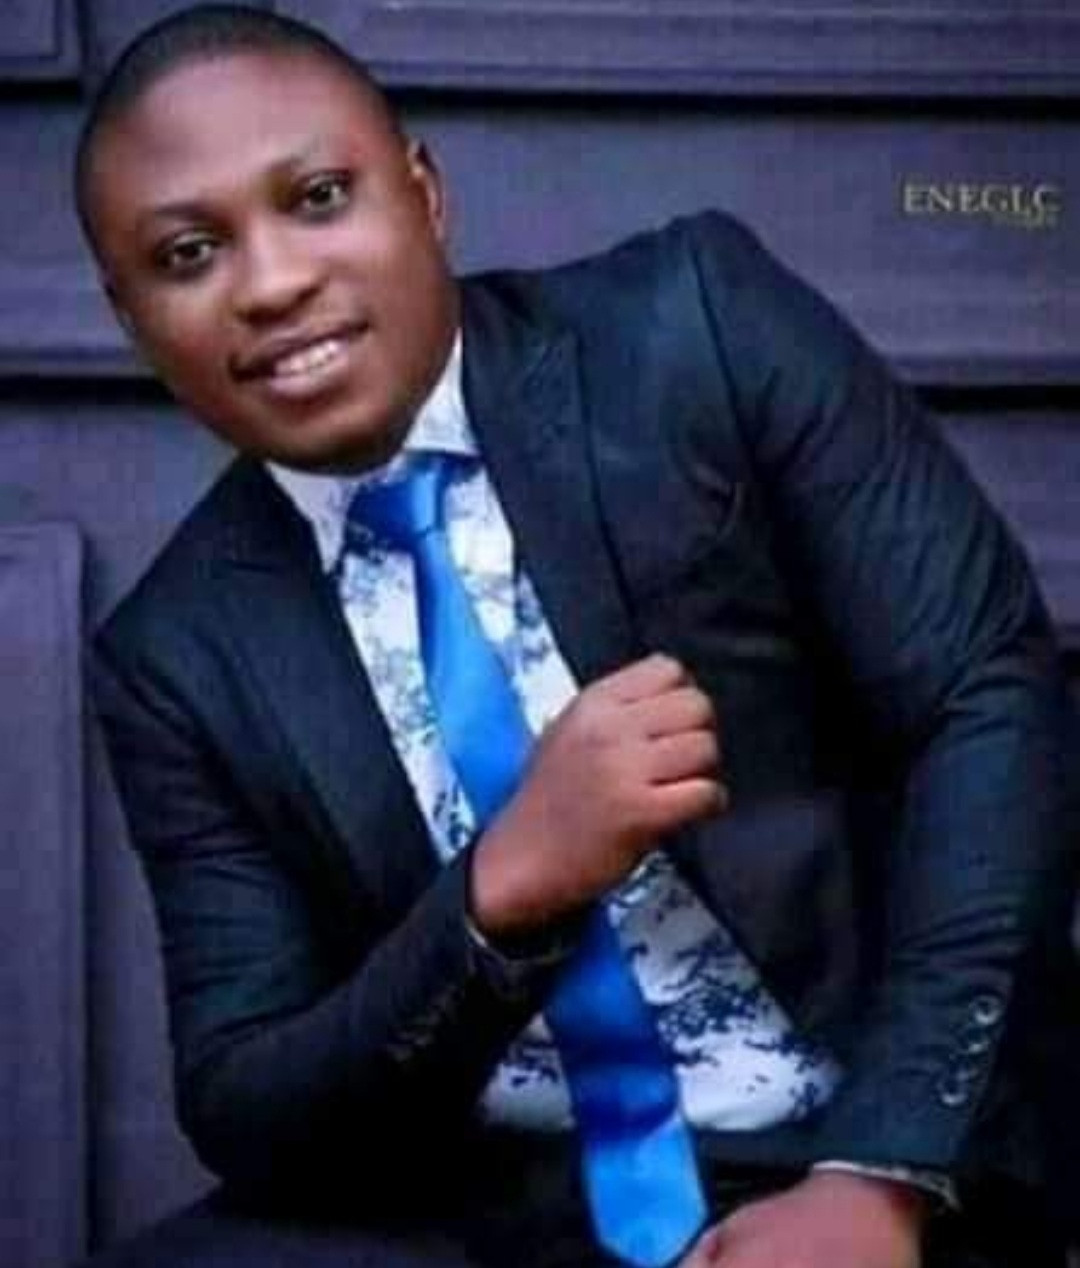 Another alleged Winners Chapel pastor claims